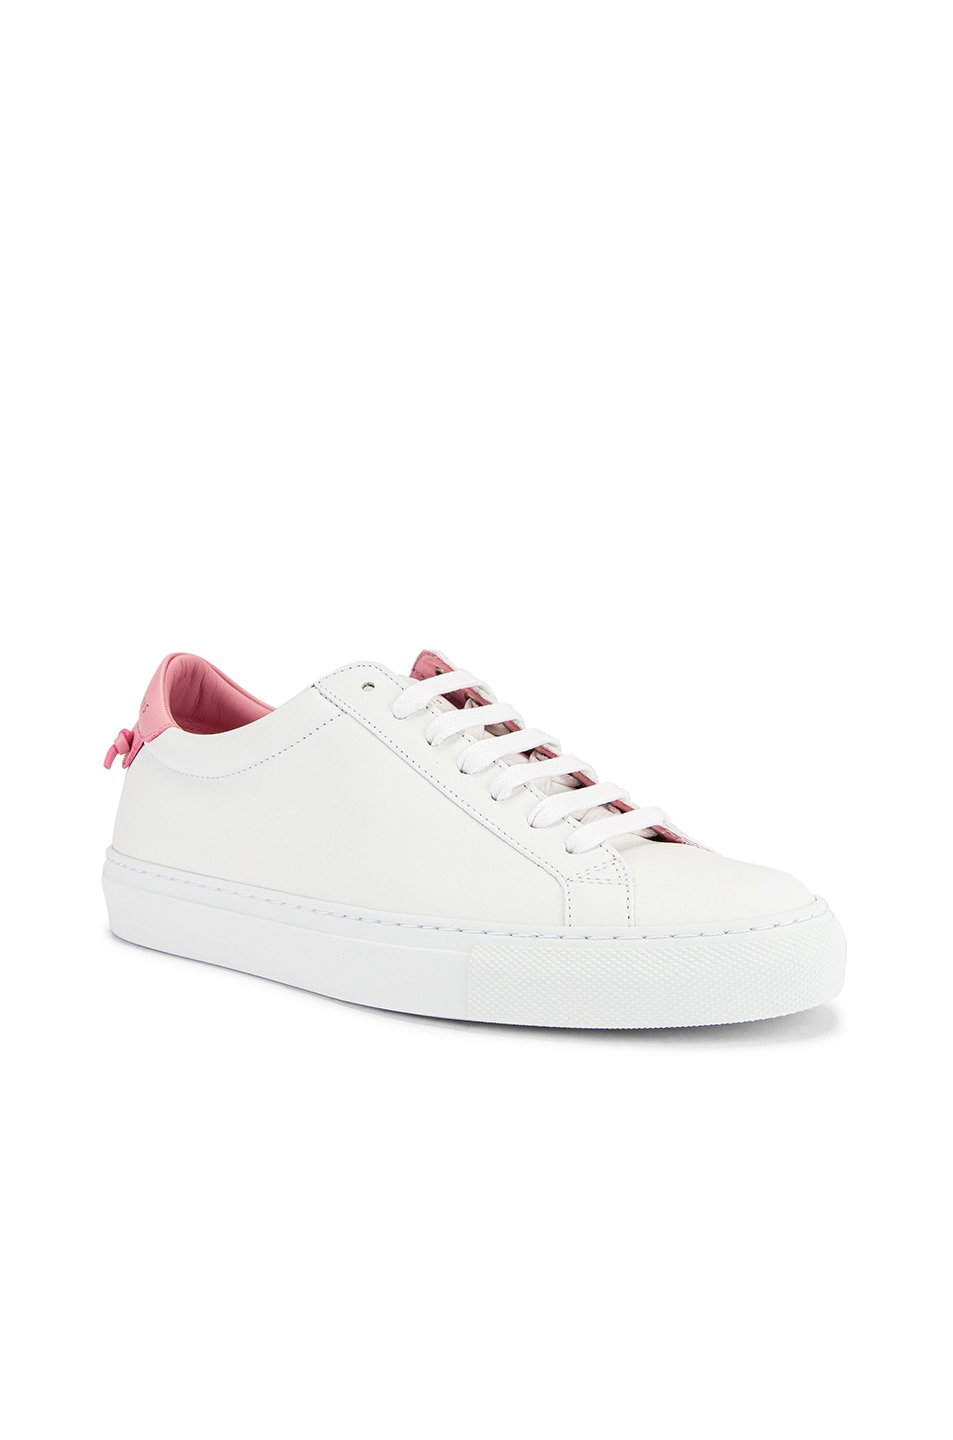 Image 2 of Givenchy Urban Street Low Sneaker in Bubble Gum